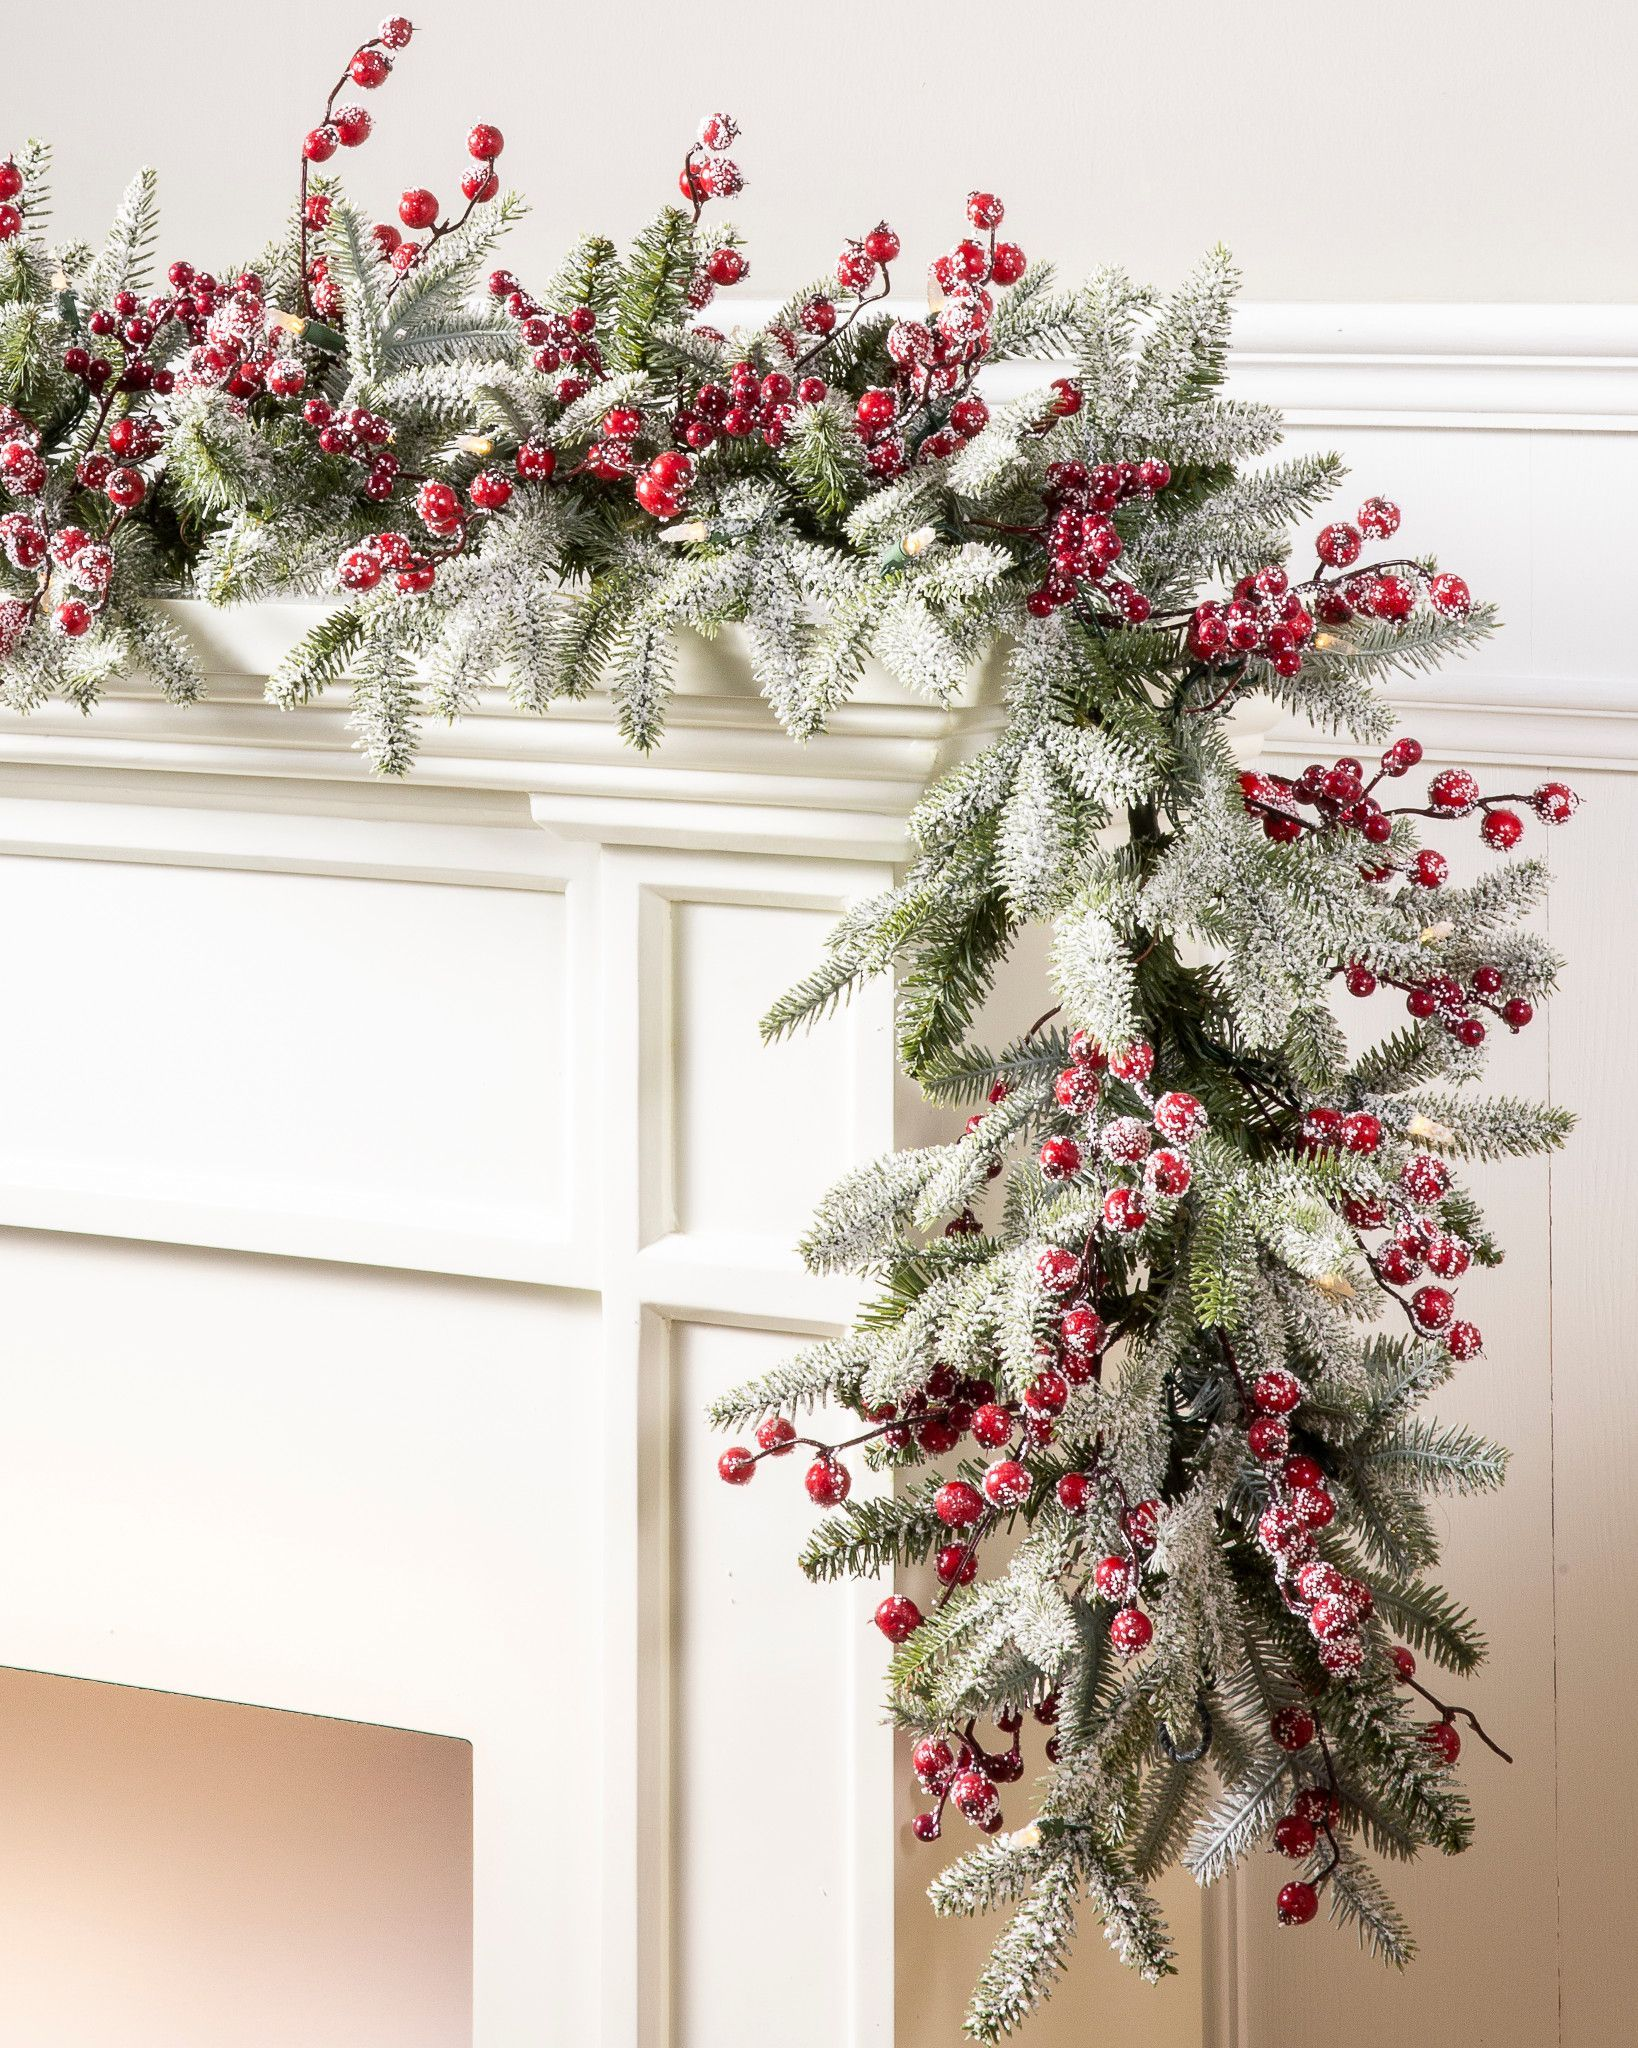 6' Red Berry Frosted Fraser Fir Artificial Christmas Garland, LED Clear by Balsam Hill -   19 christmas decor wreaths & garlands ideas